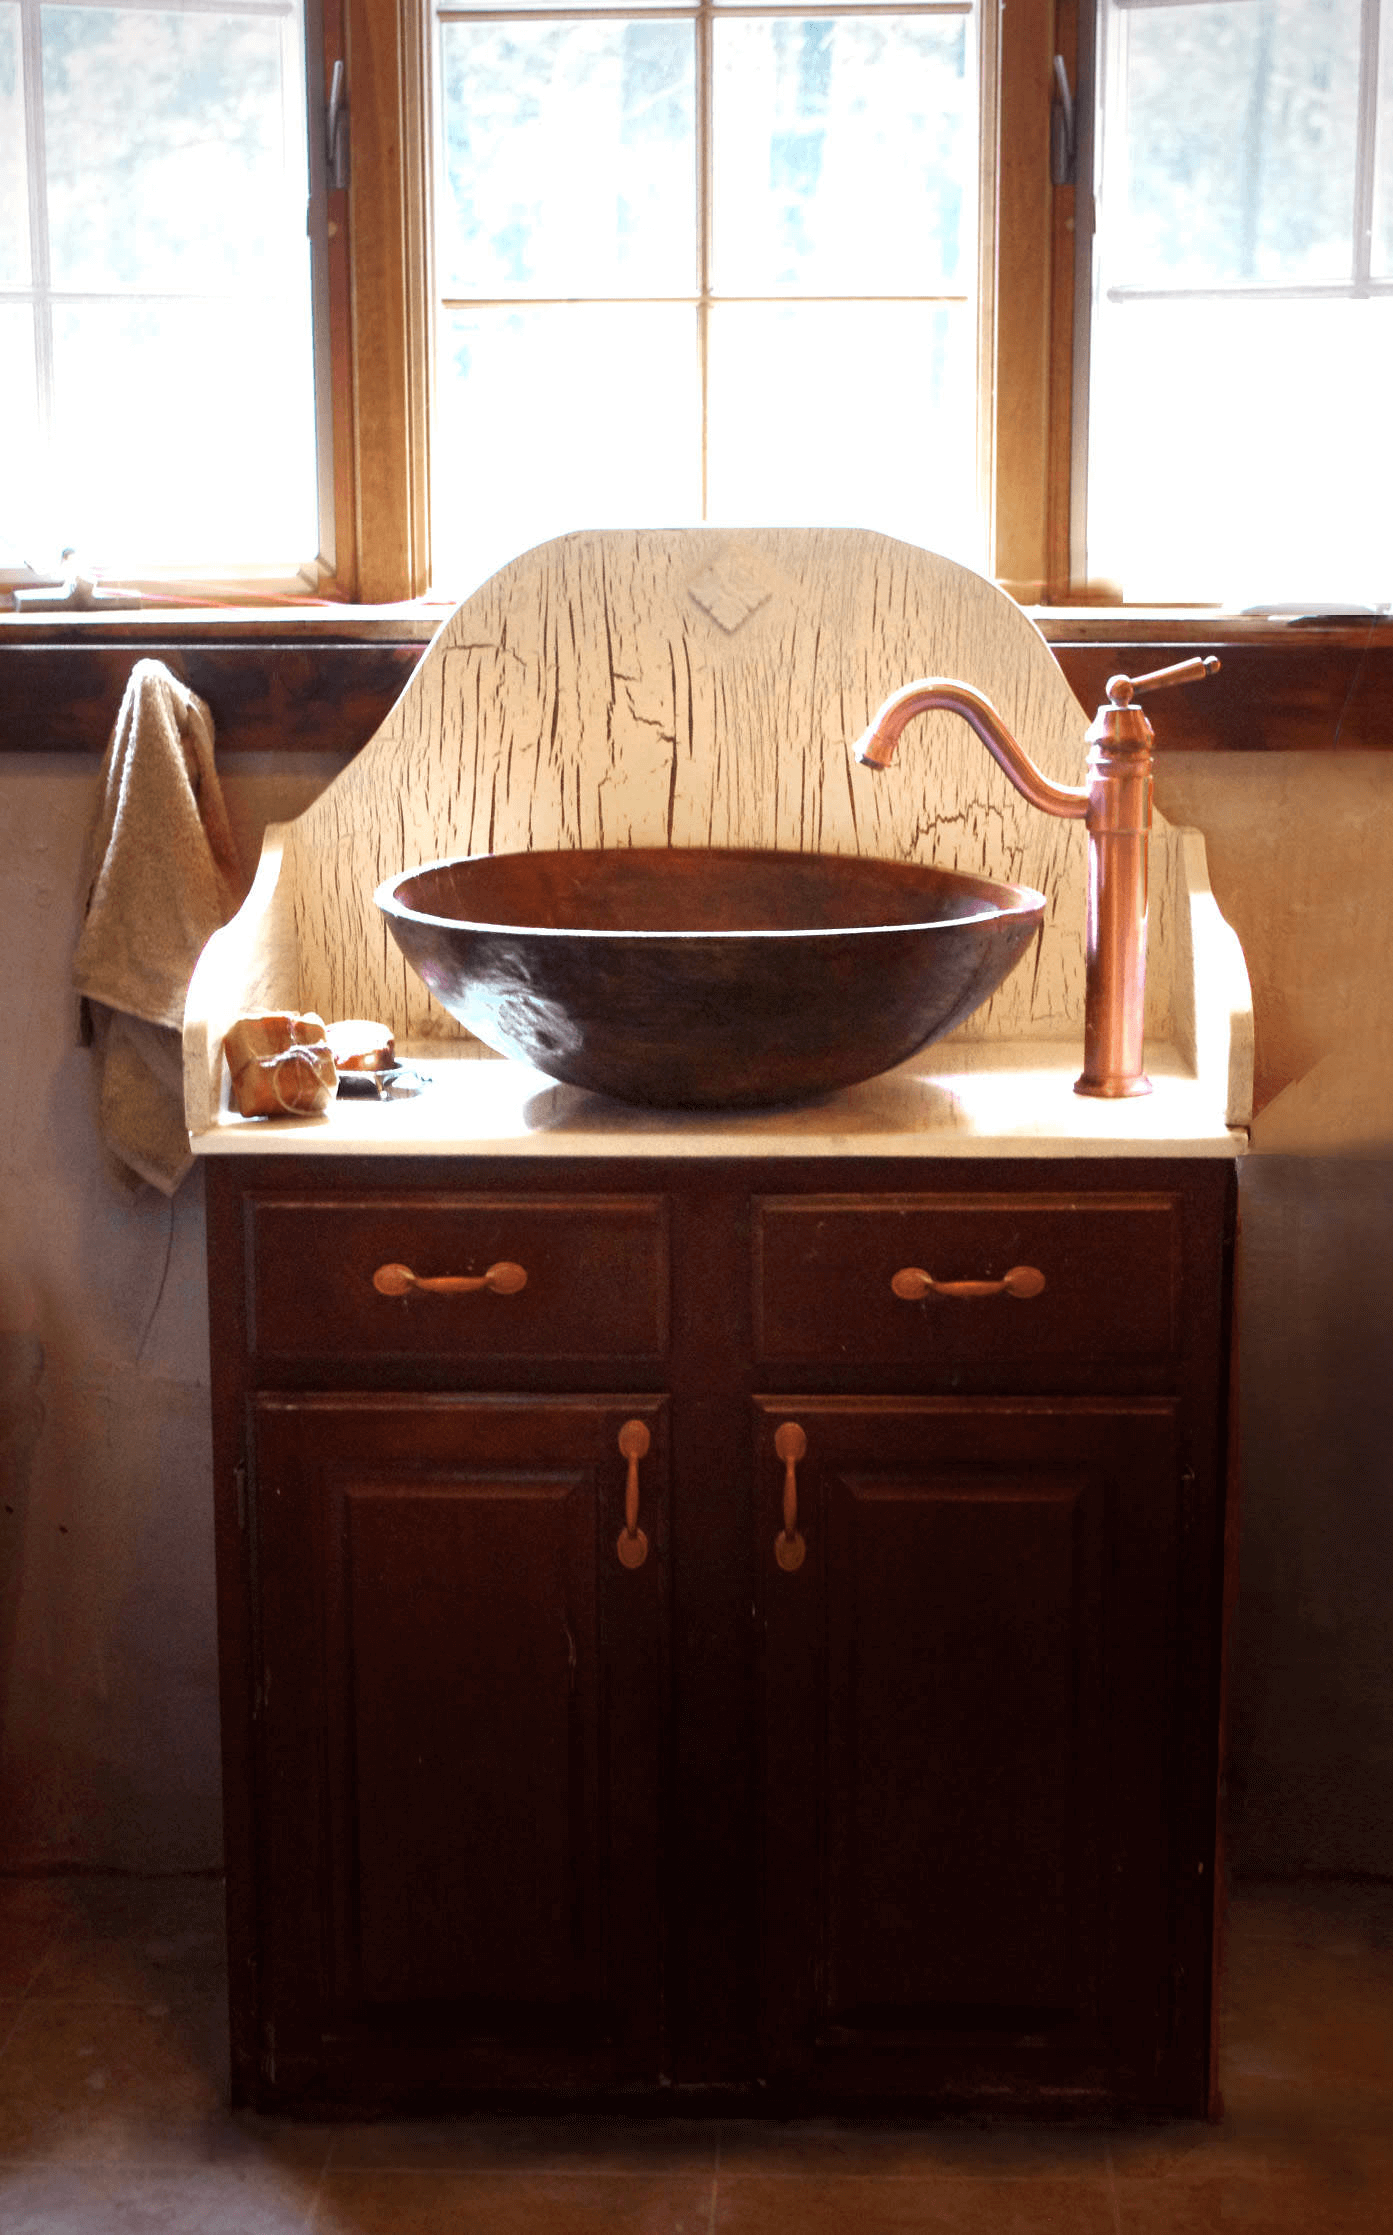 Antique Bathroom Vanity With Bowl Vessel Sink Bathroom Pinterest - Antique bathroom vanity with vessel sink